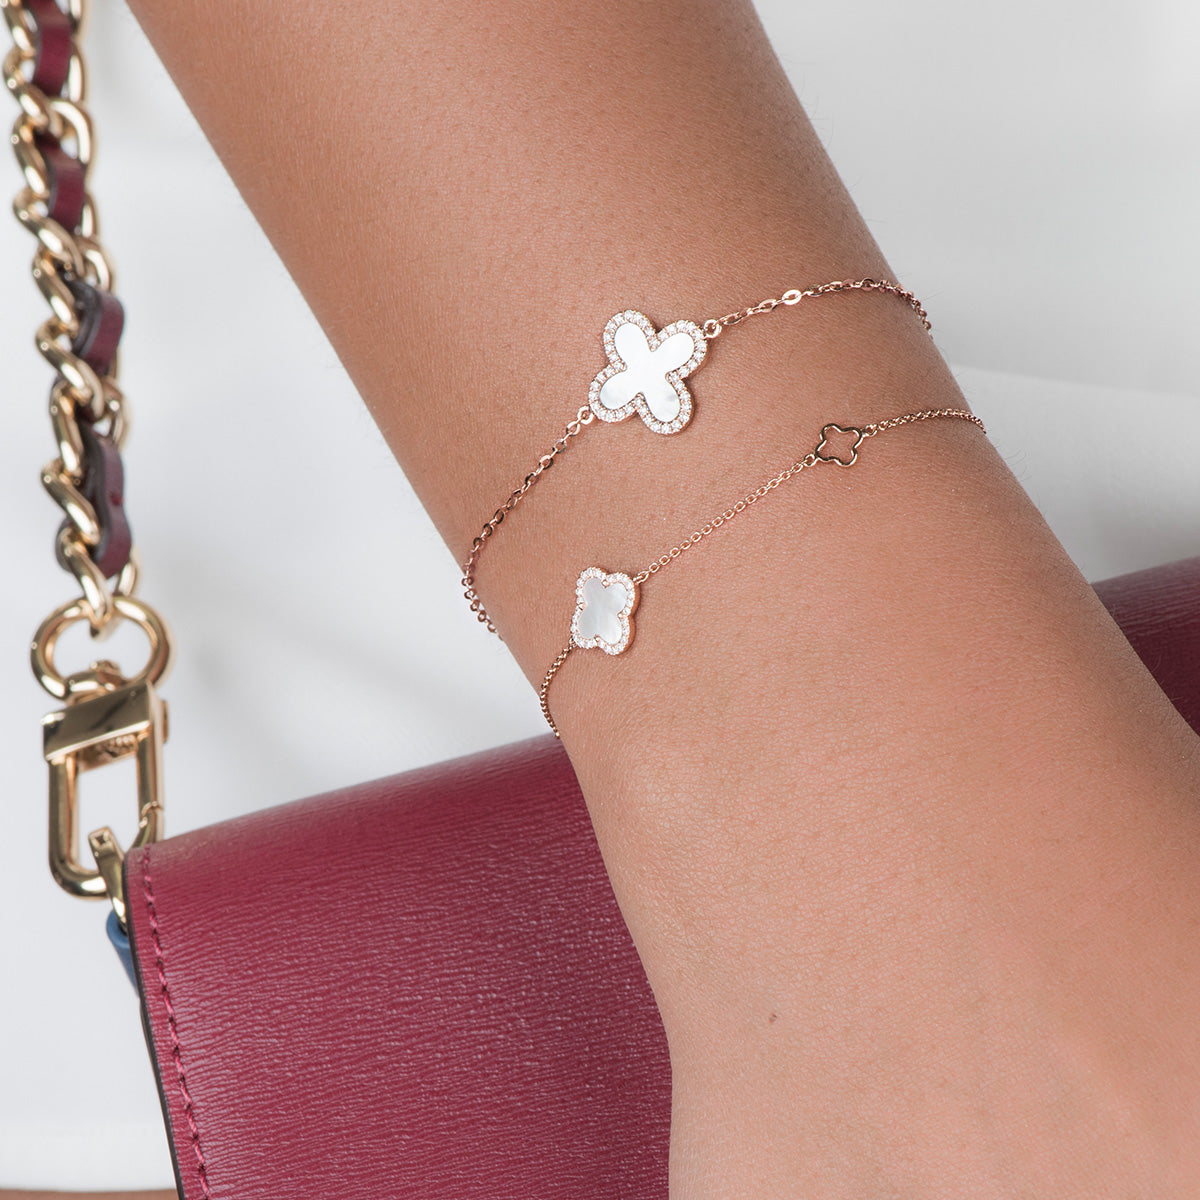 Diamond Clover Bracelet With Pearl - estellacollection